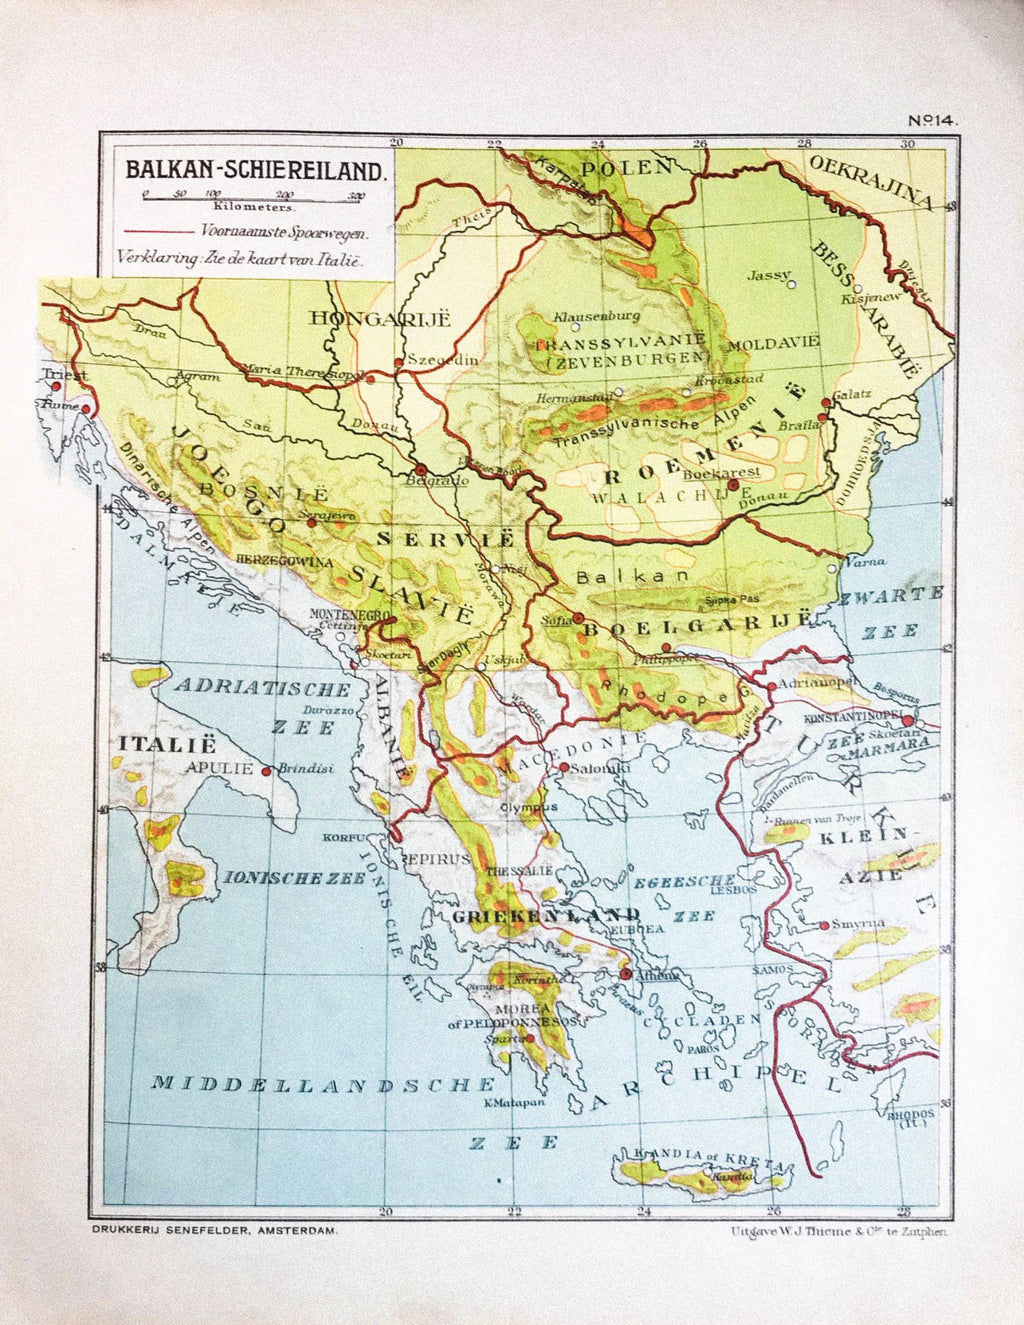 Balkan Schiereiland - 1930 - World of Maps & Travel